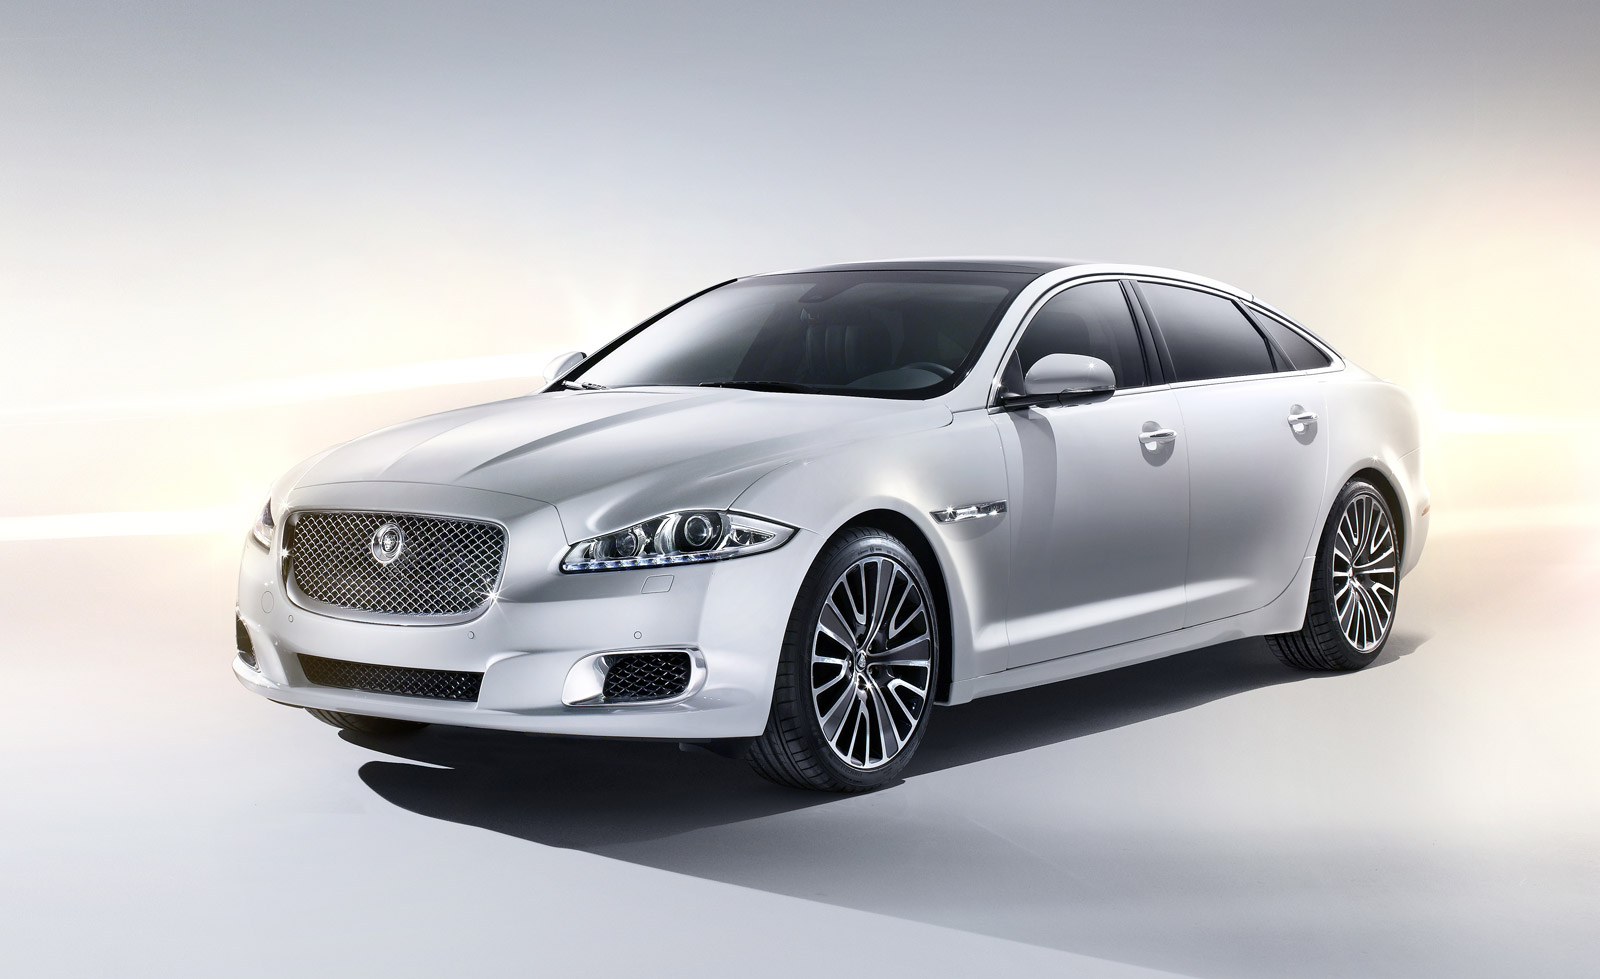 Jaguar Xj Autobiography The Most Luxurious Jaguar Ever Is The New Xj Ultimate Edition